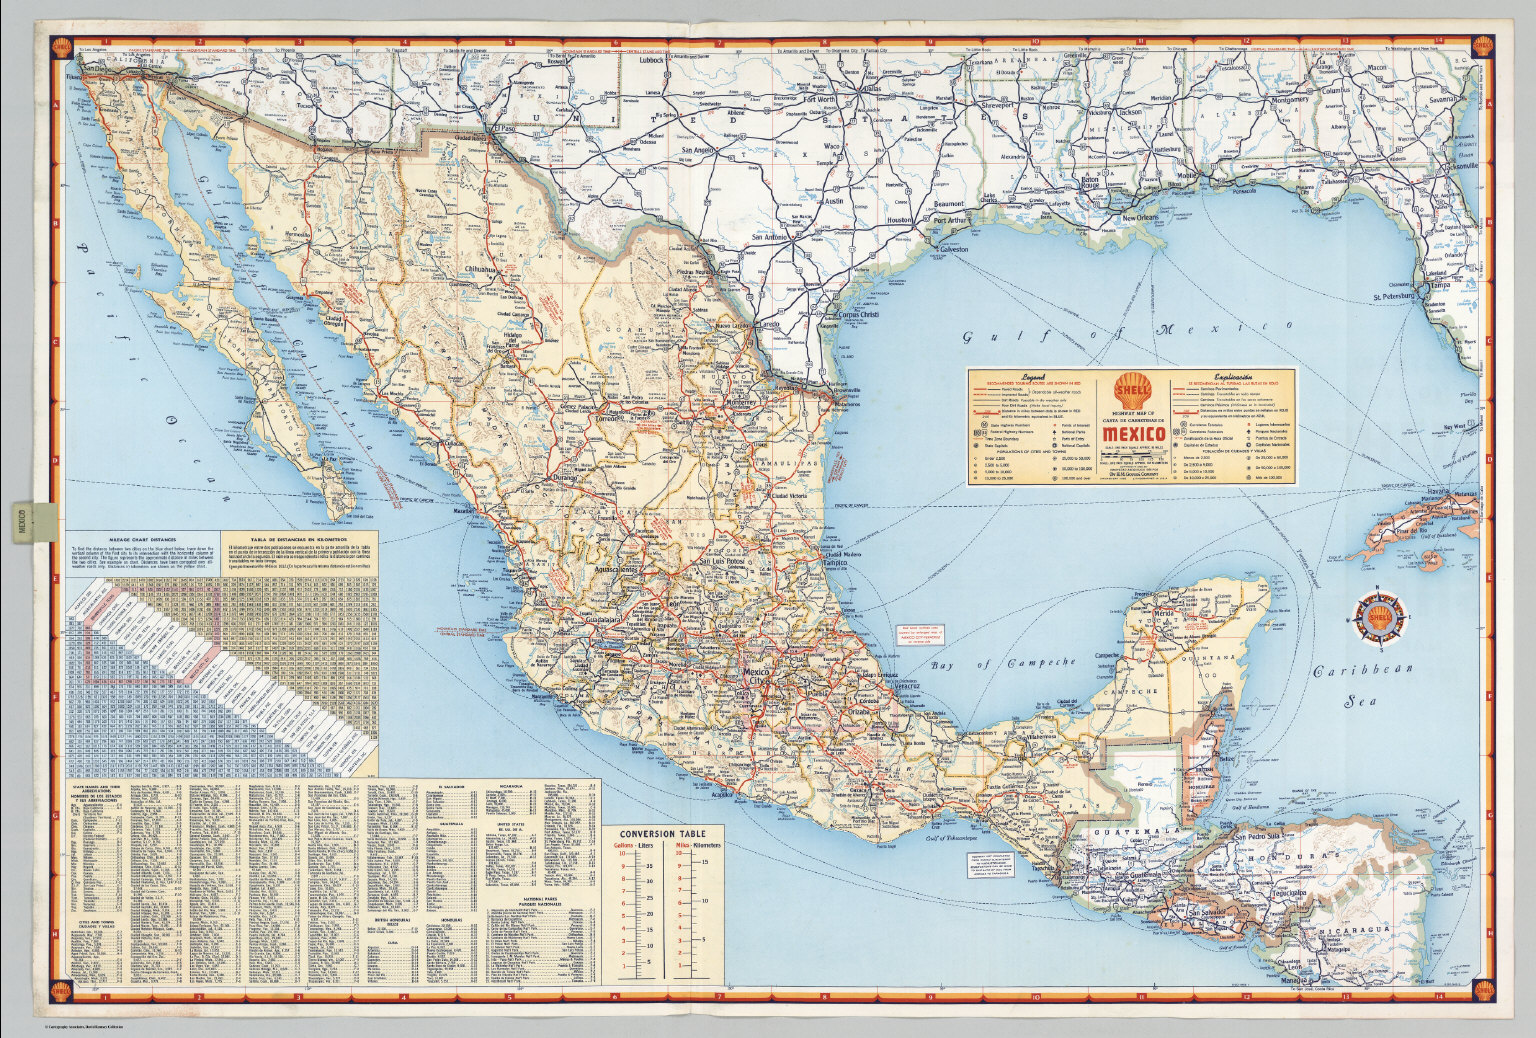 Shell Highway Map Of Mexico David Rumsey Historical Map Collection - Mexico road map